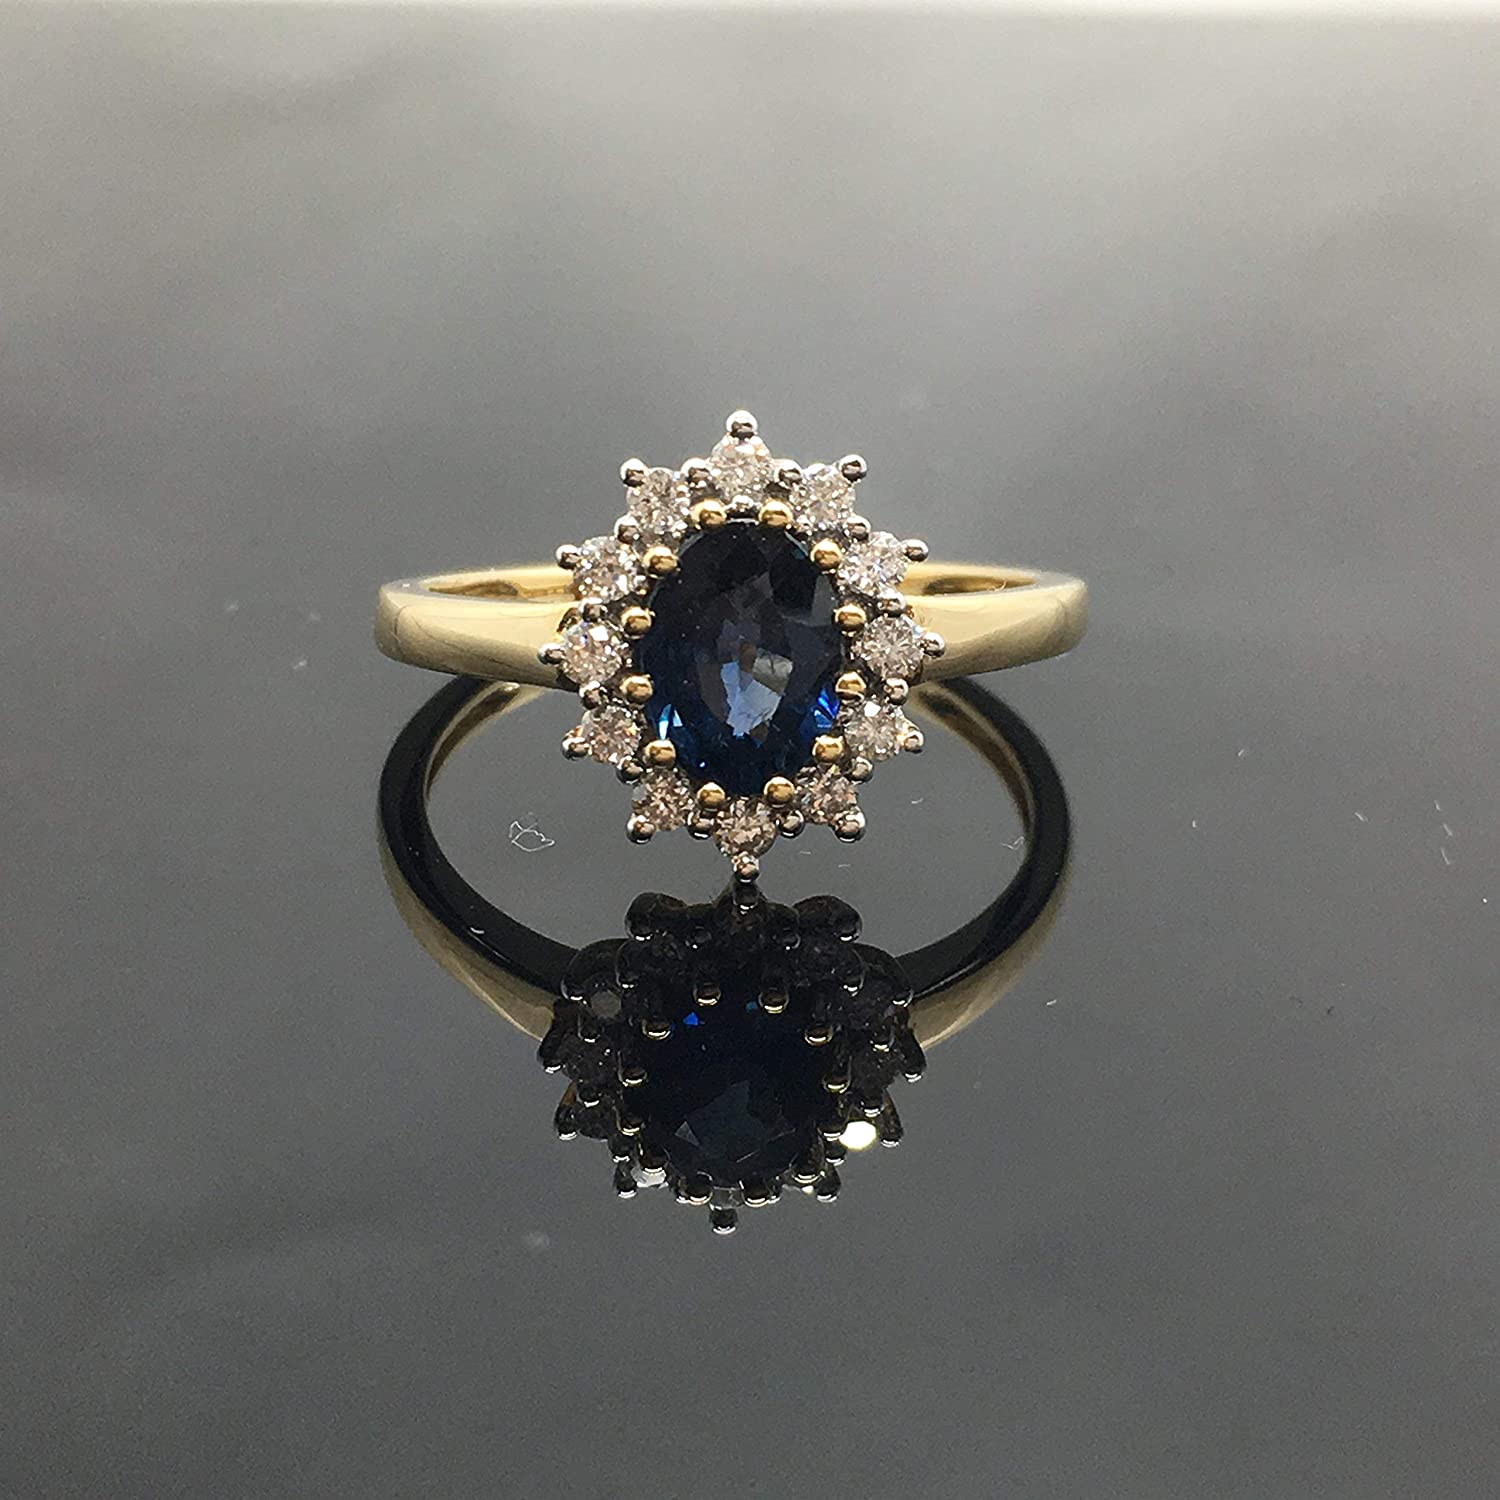 Amazon Com Victorian Sapphire Engagement Ring Solid 14k Yellow Gold Vintage Princess Diana Inspired Engagement Ring 14k Genuine Sapphire Diamond Halo Ring 14k Natural Blue Sapphire Ring Handmade